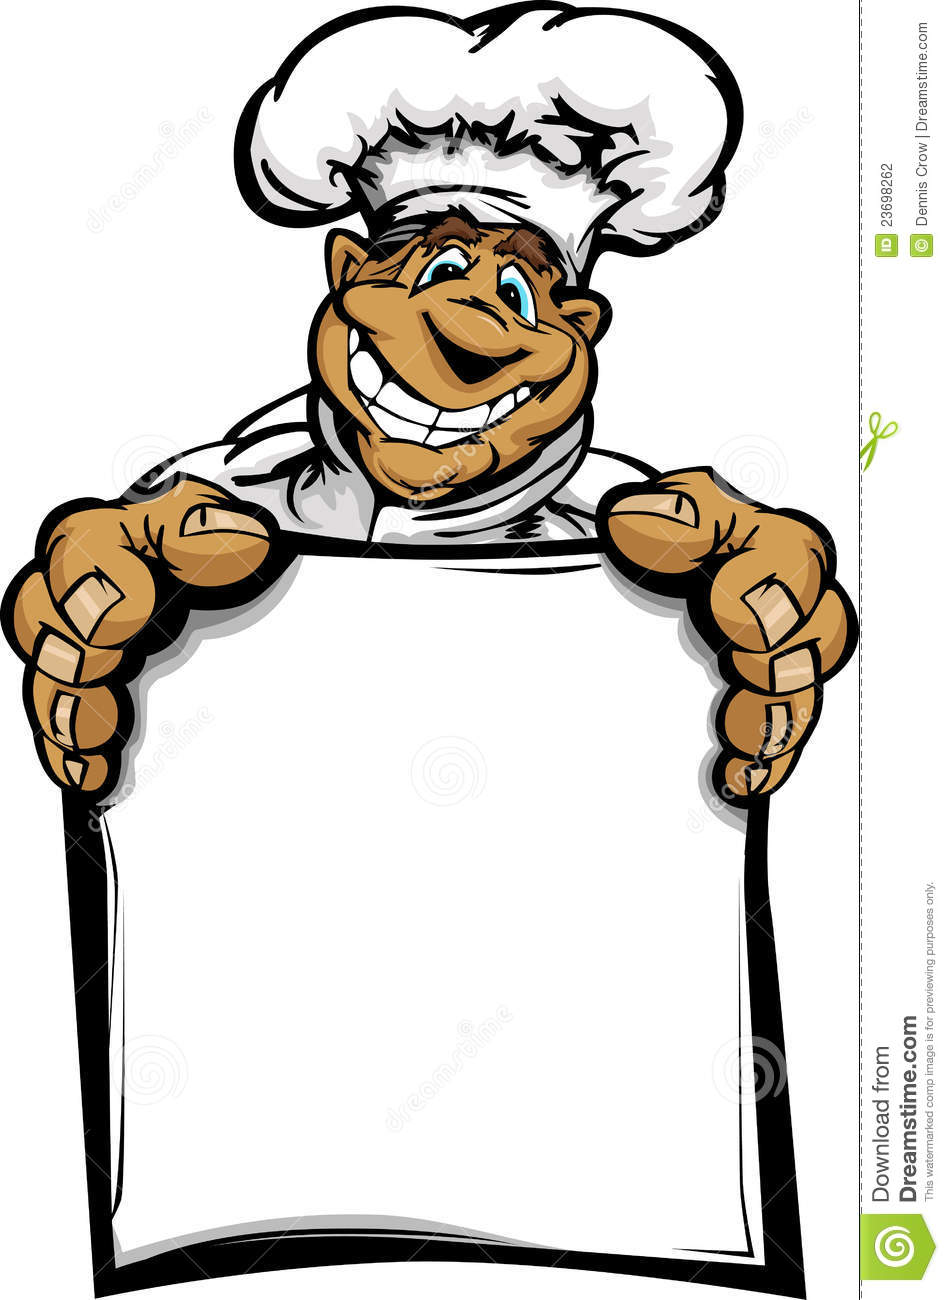 Restaurant Chef or Cook Mascot with Happy Smiling Face Wearing Chefs ...